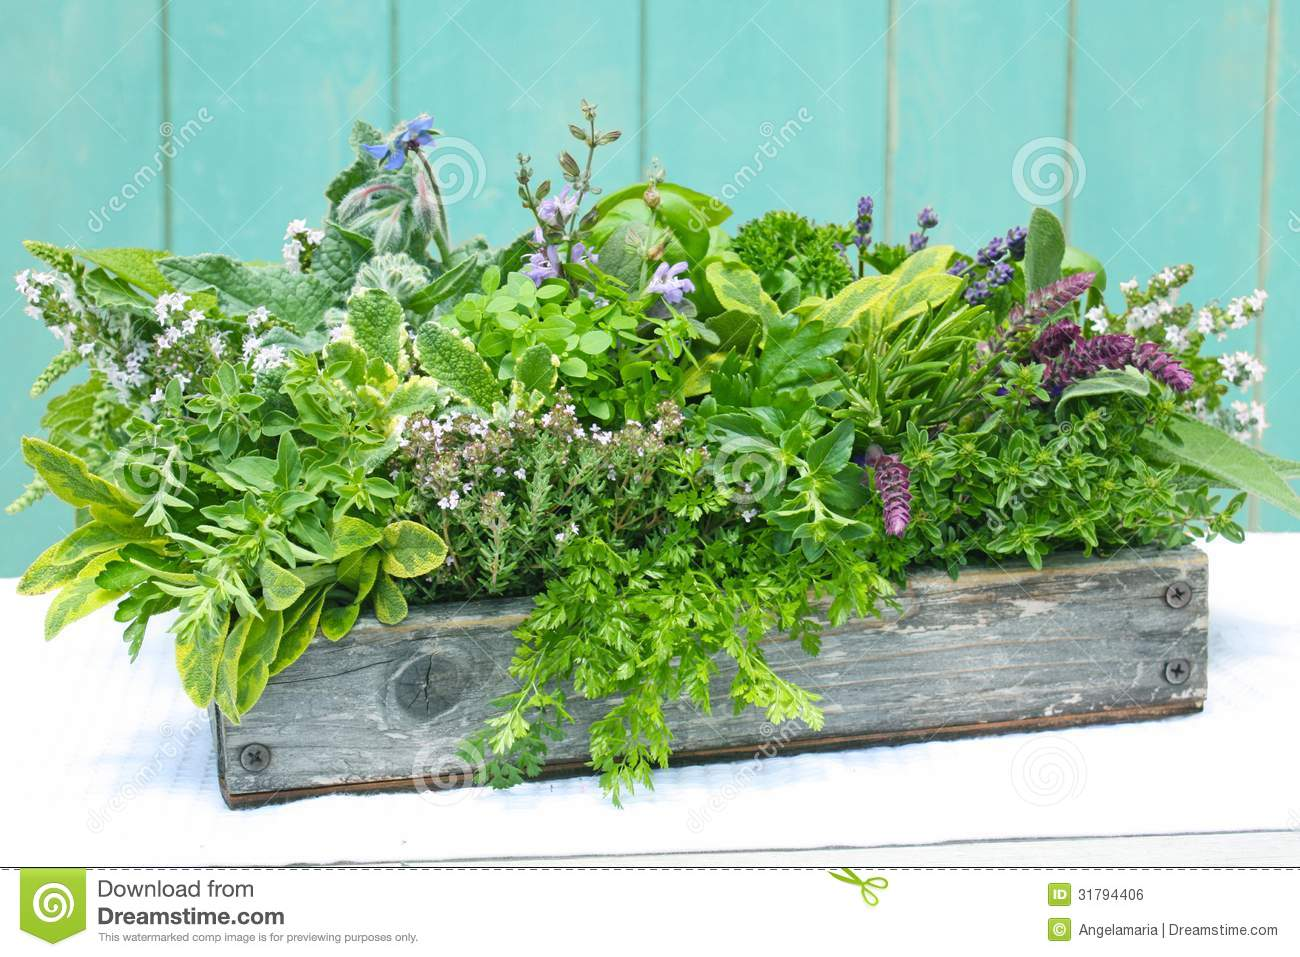 Planter For Herbs Herbs In Wood Planter Stock Photo Image Of Decorative 31794406